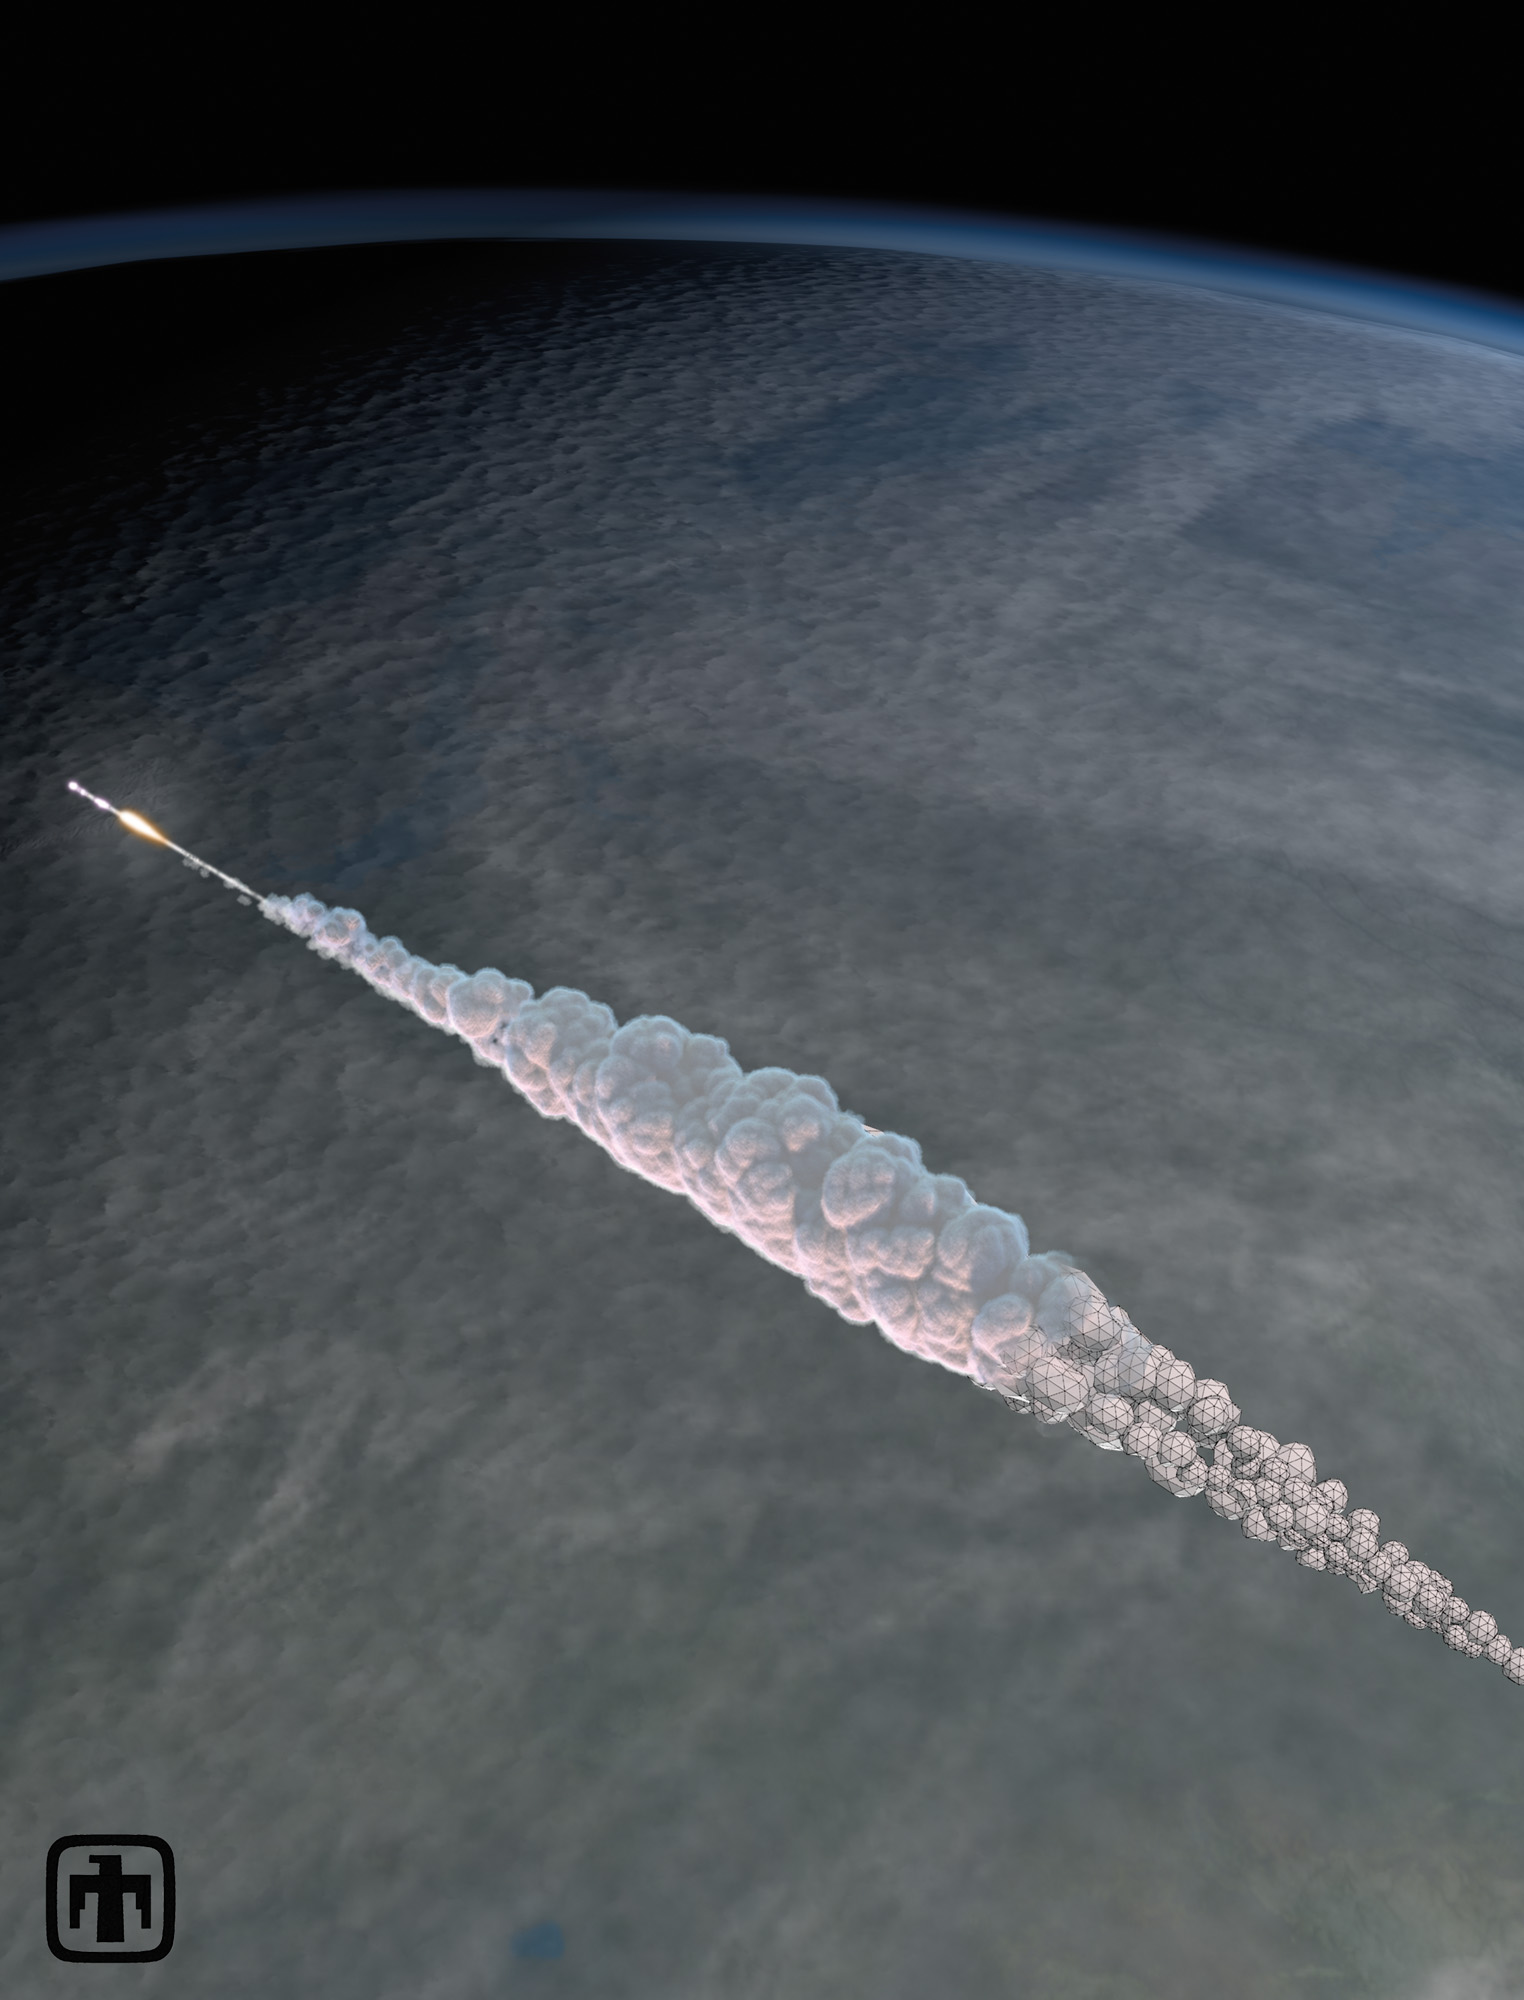 Earth at Higher Risk of Asteroid Impact, Russian Meteor Explosion Reveals